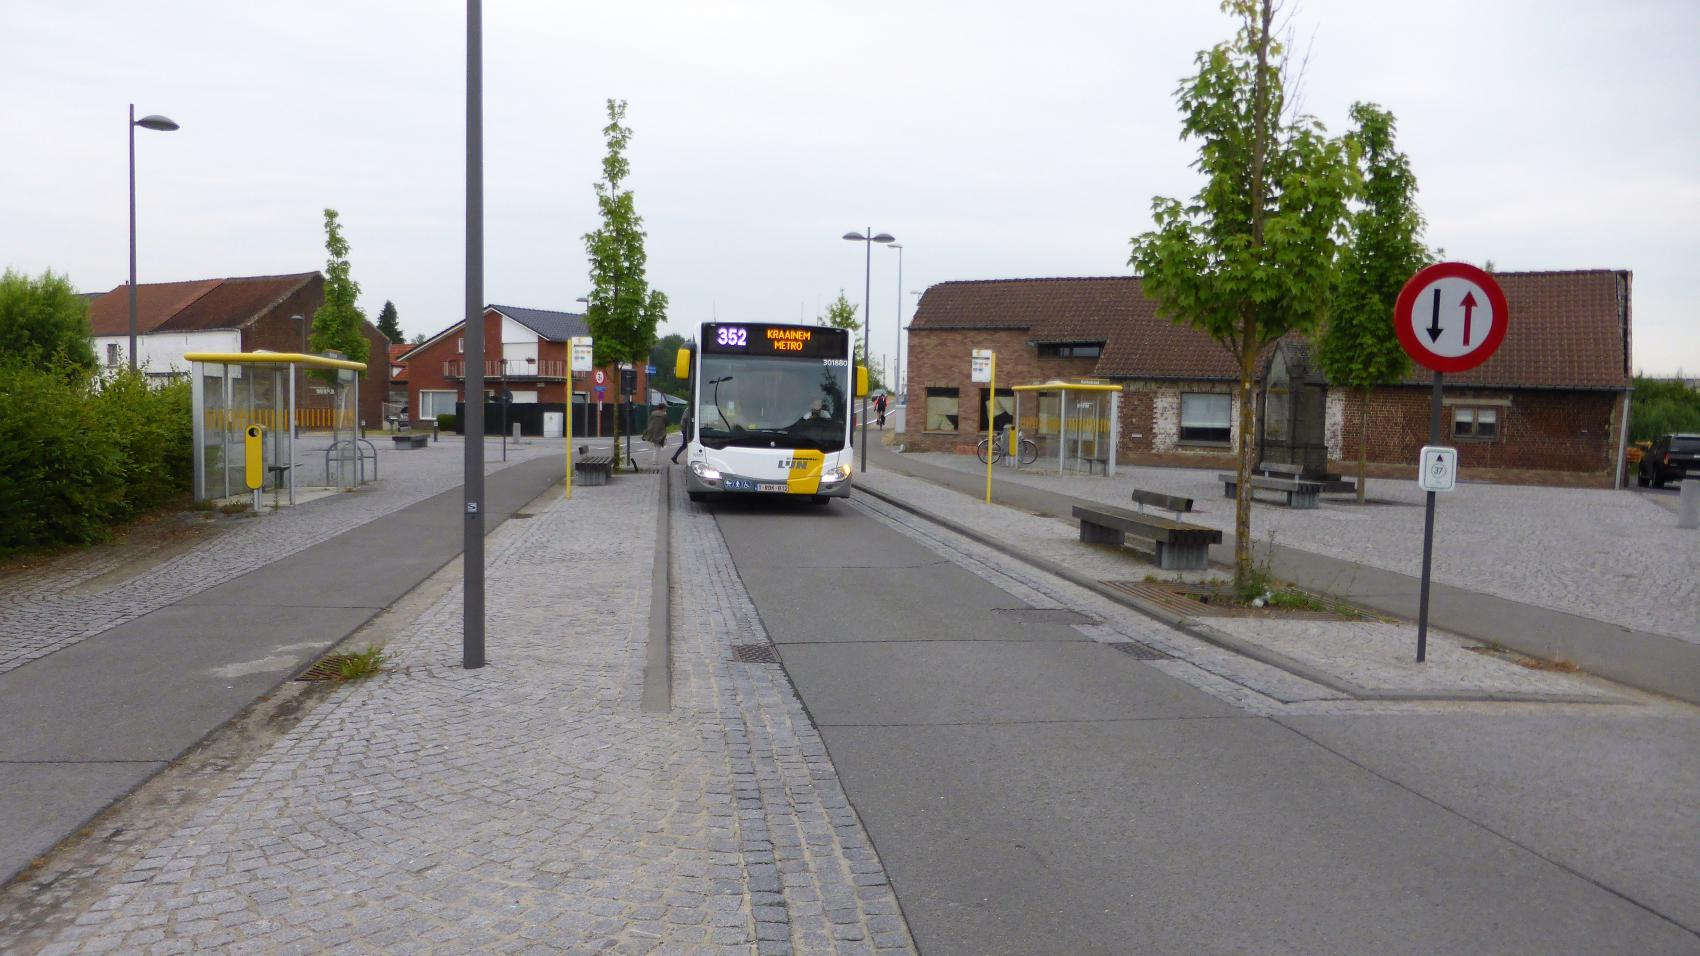 When the bus stops, cars driving in both directions must wait and pedestrians can safely cross the carriageway. Cycle traffic is not interrupted.